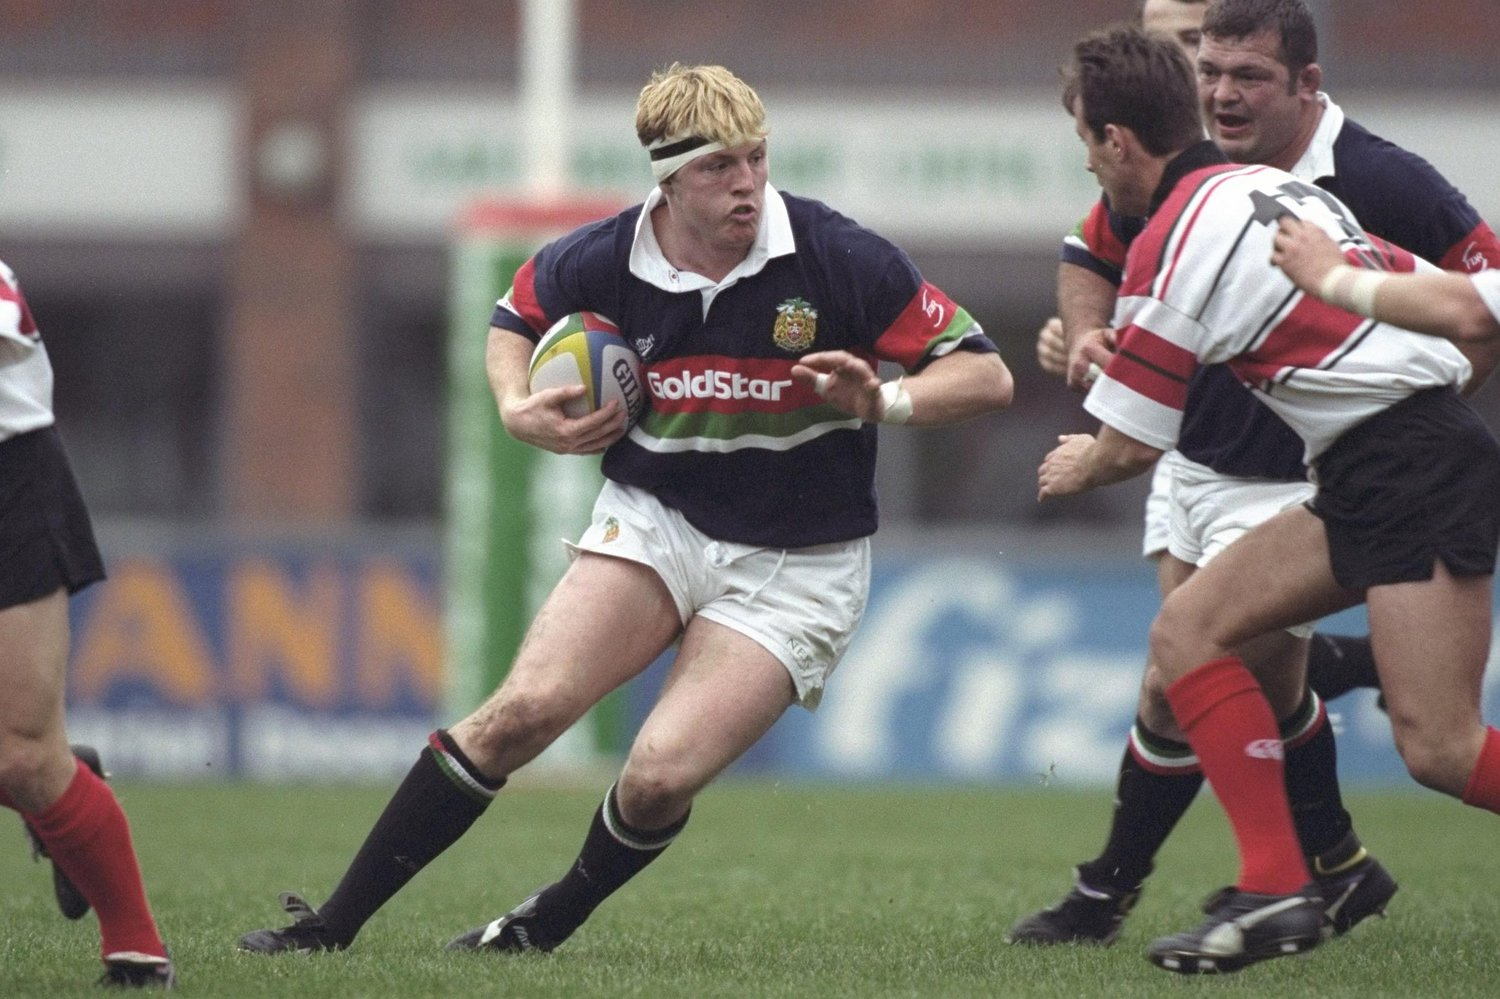 Captains Collection 1996 player